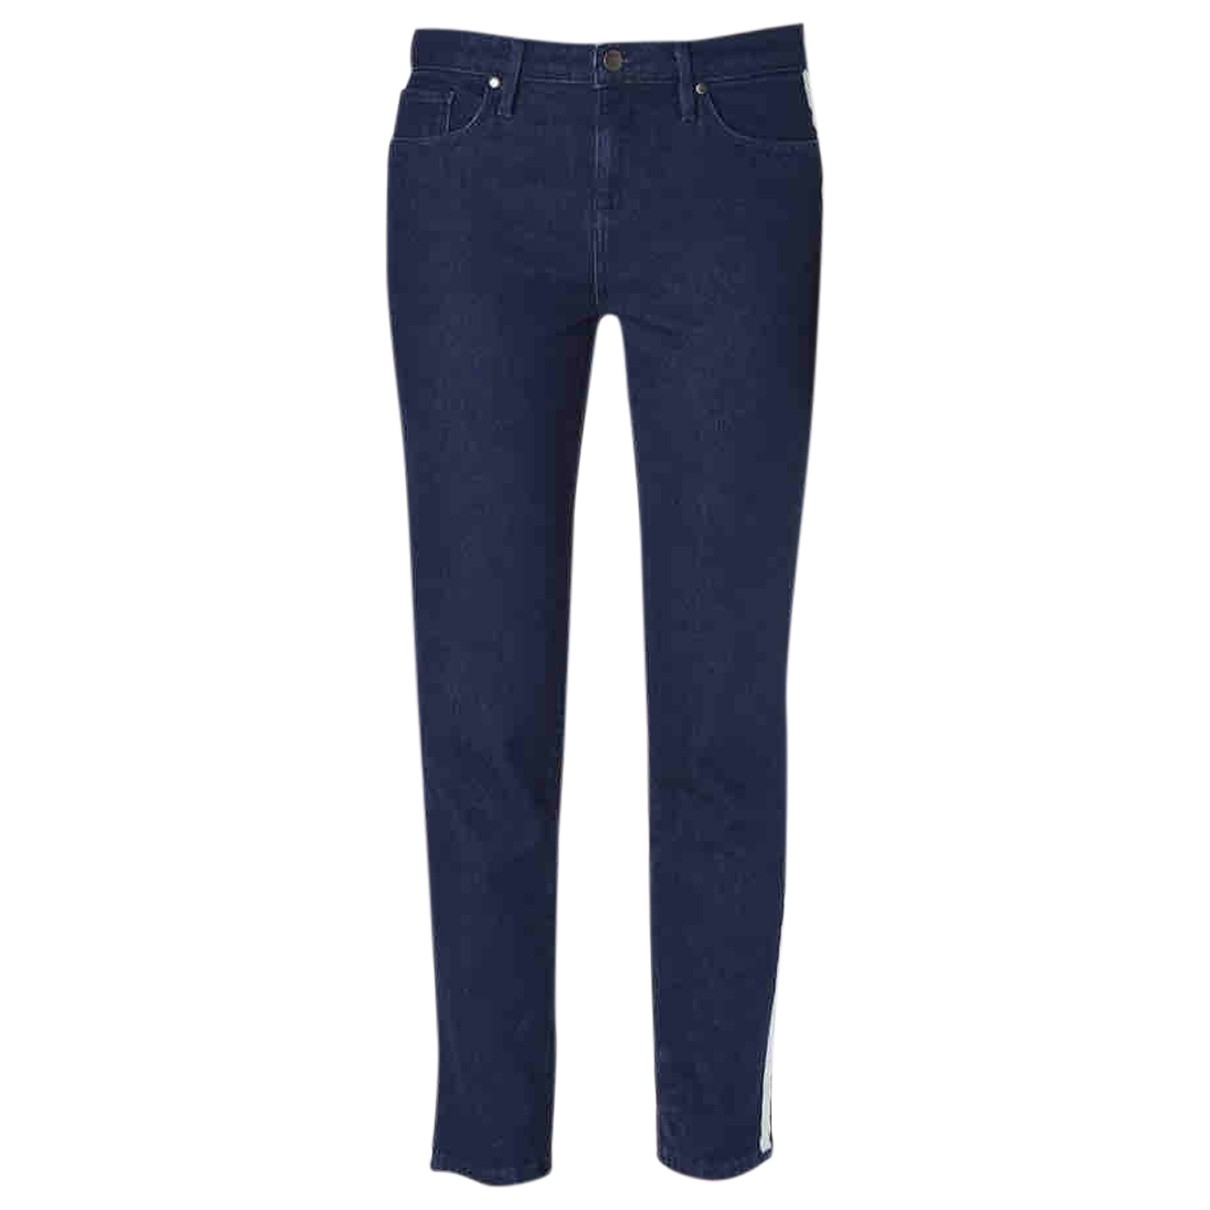 Tommy Hilfiger \N Blue Cotton - elasthane Jeans for Women 34 US